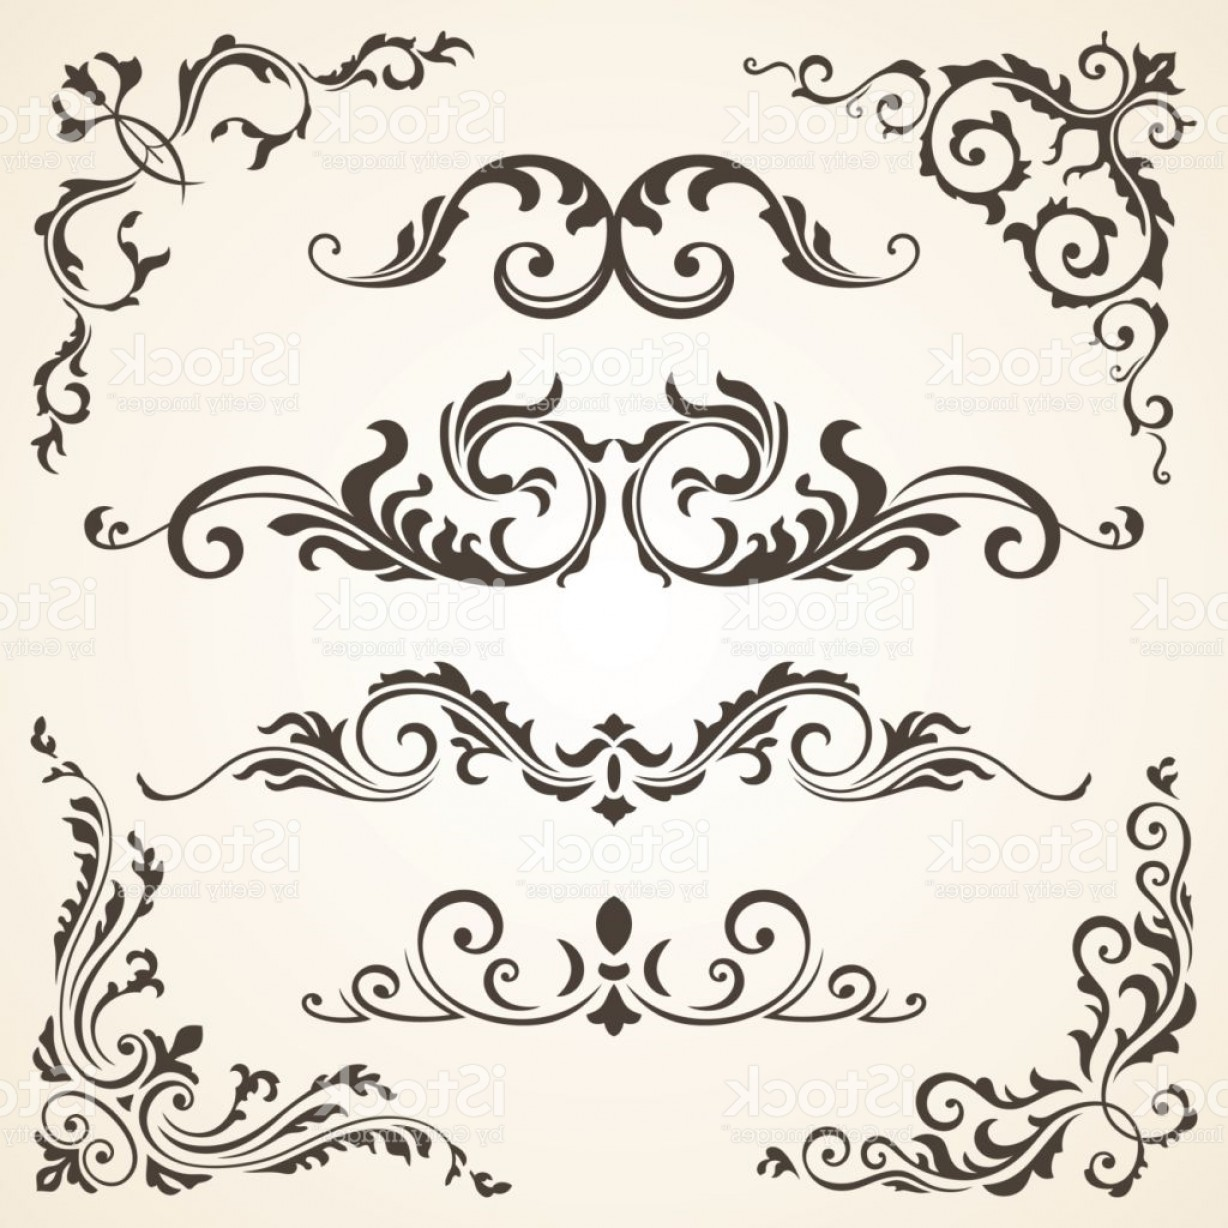 Floral Vector Calligraphy: Vector Set Of Swirl Elements And Corners For Design Calligraphic Page Decoration Gm